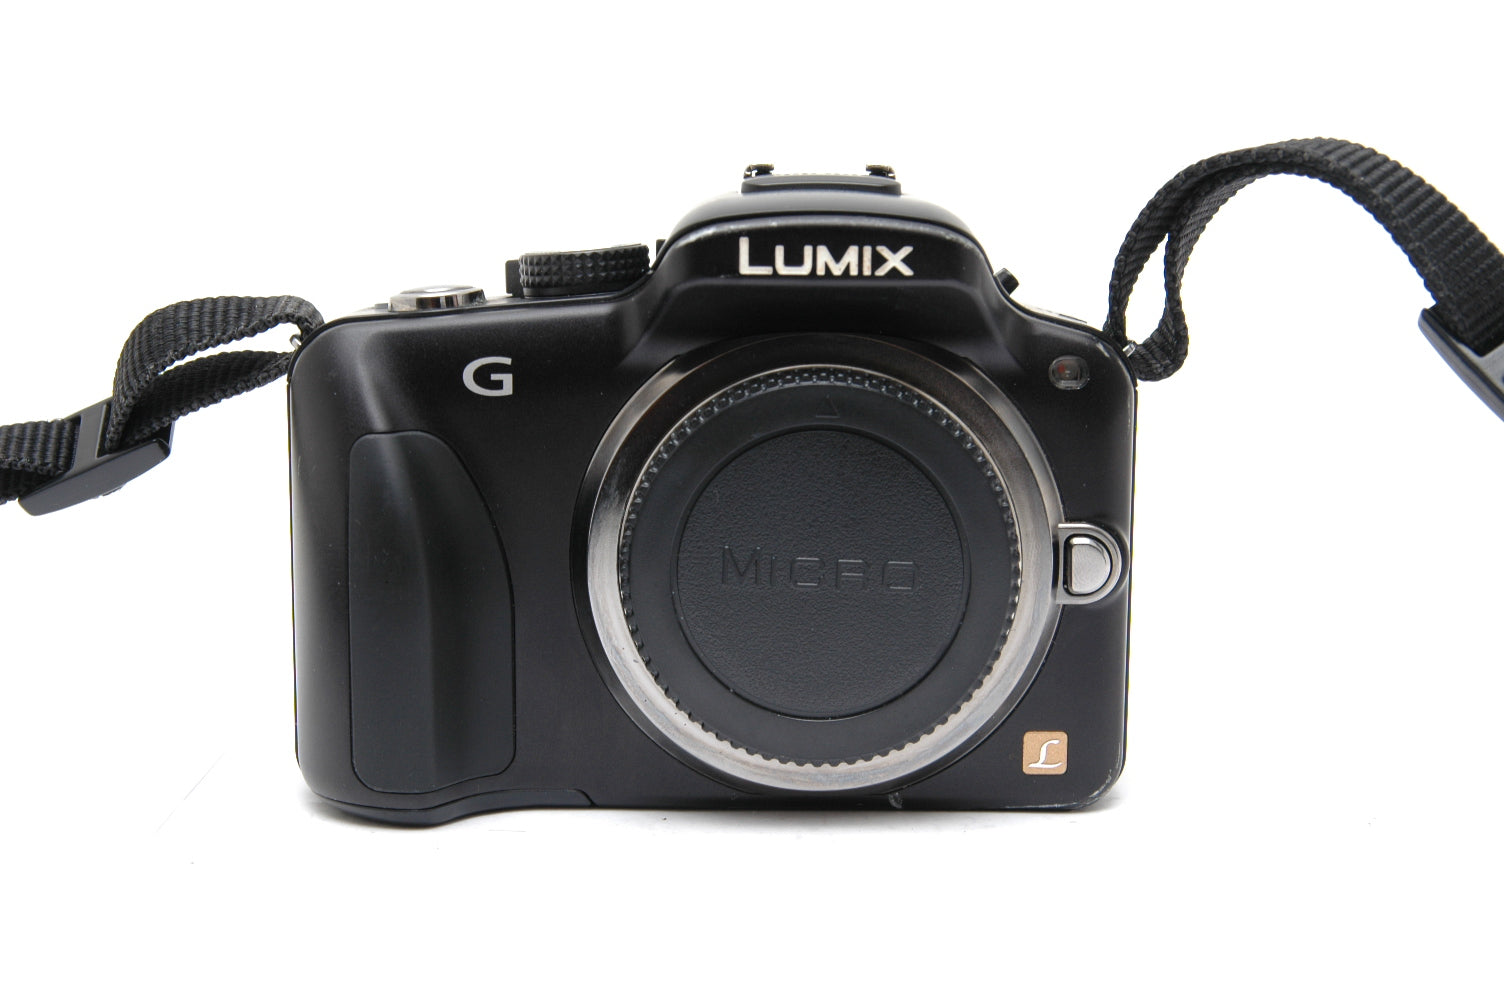 Used Panasonic Lumix DMC-G3 Camera Body - Black